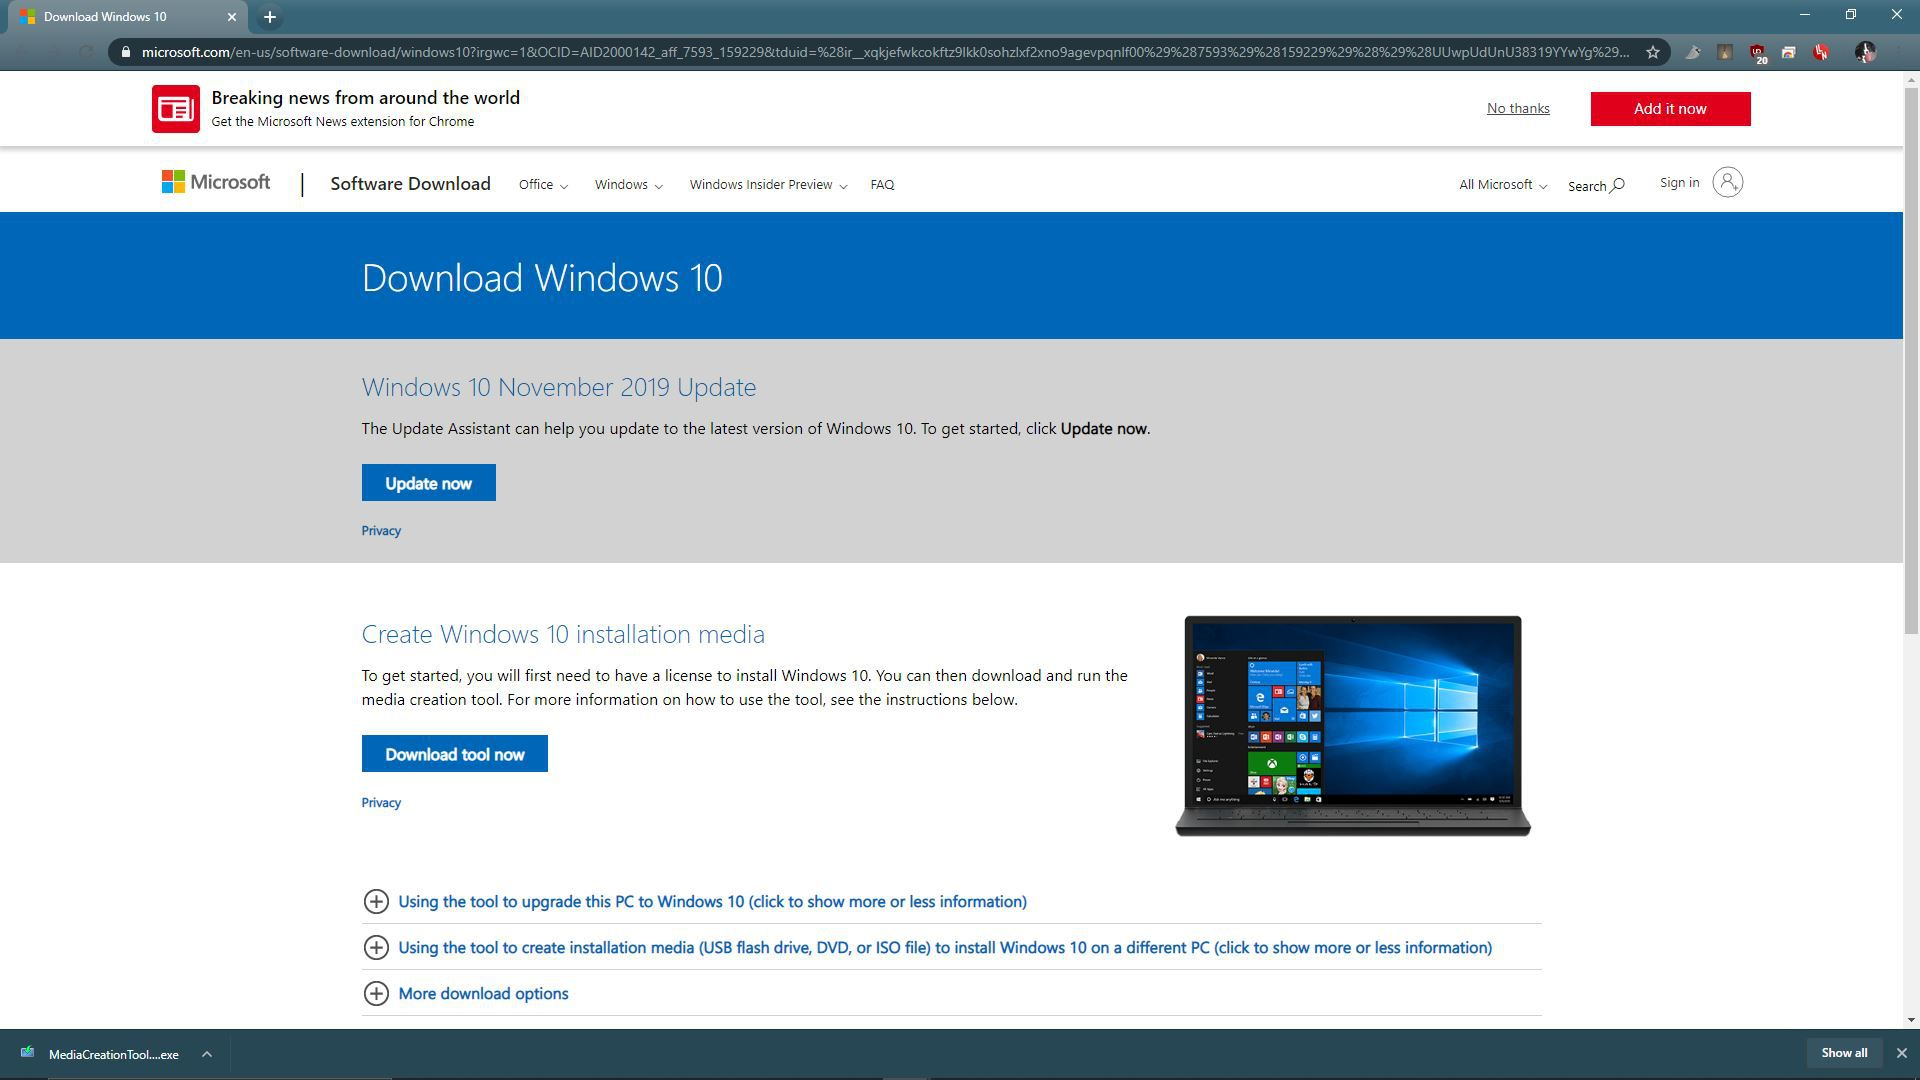 A screenshot of the Windows 10 download site.